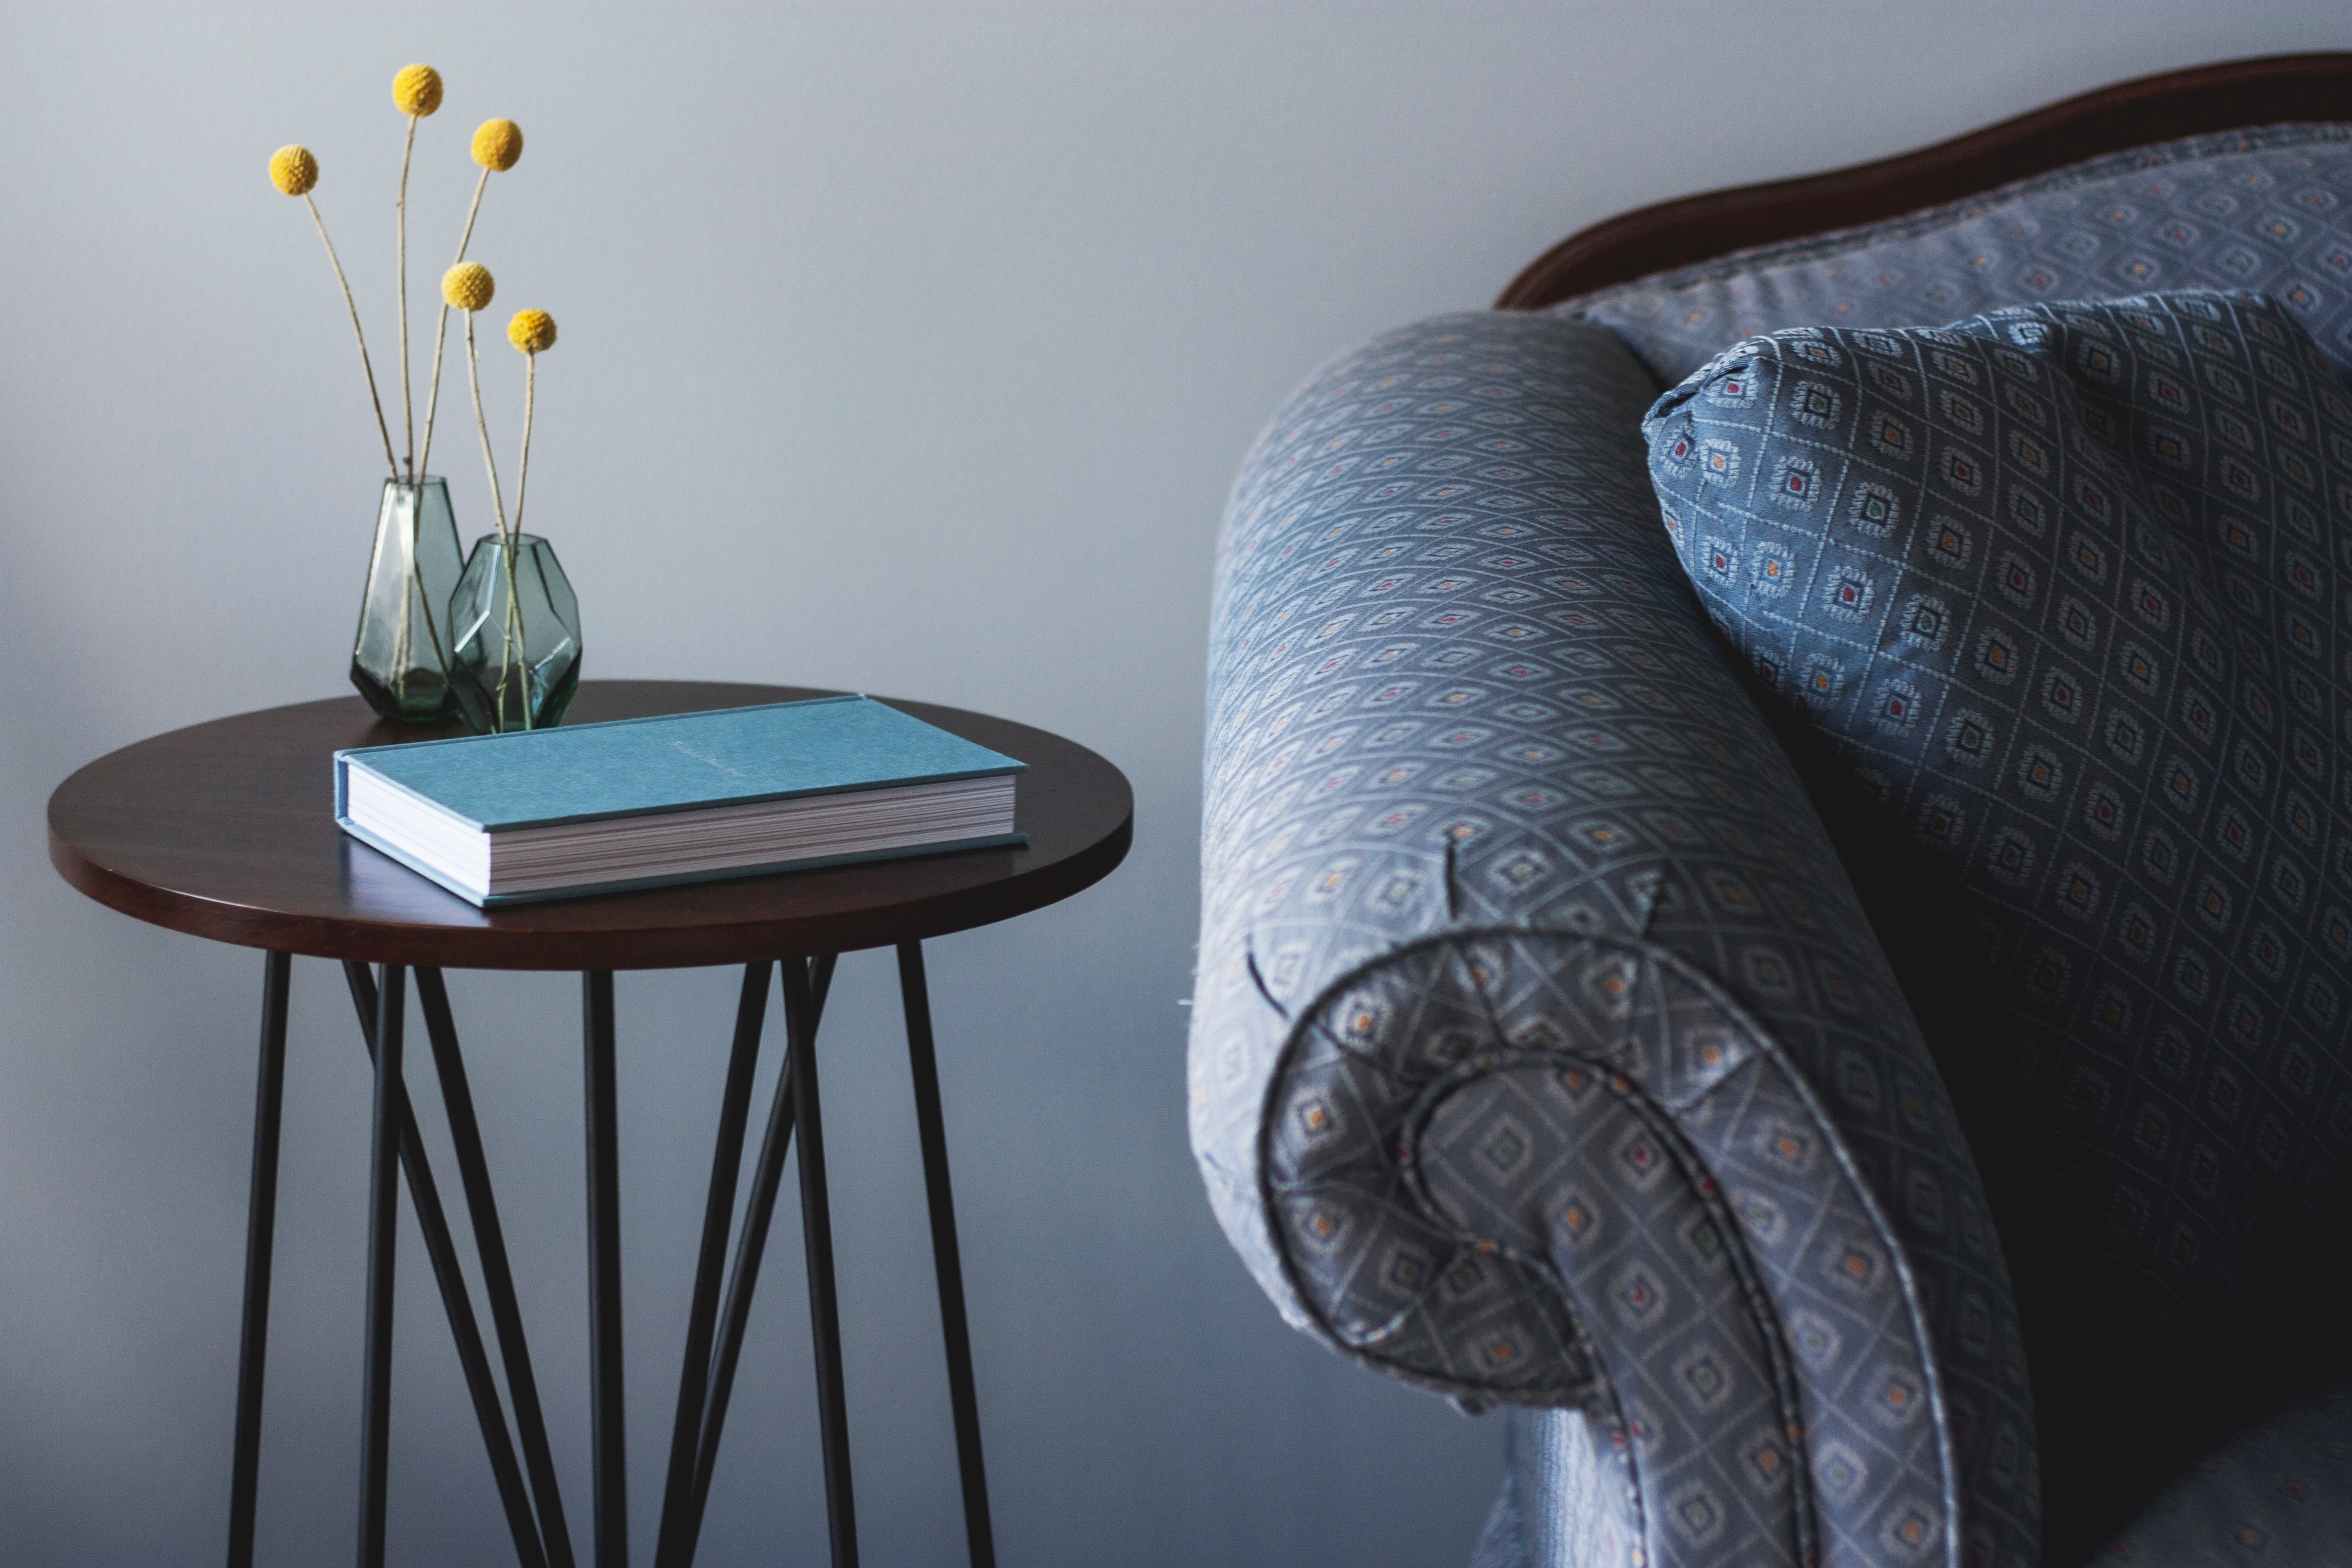 This photo is decorative. A blue chair and side table with a notebook.